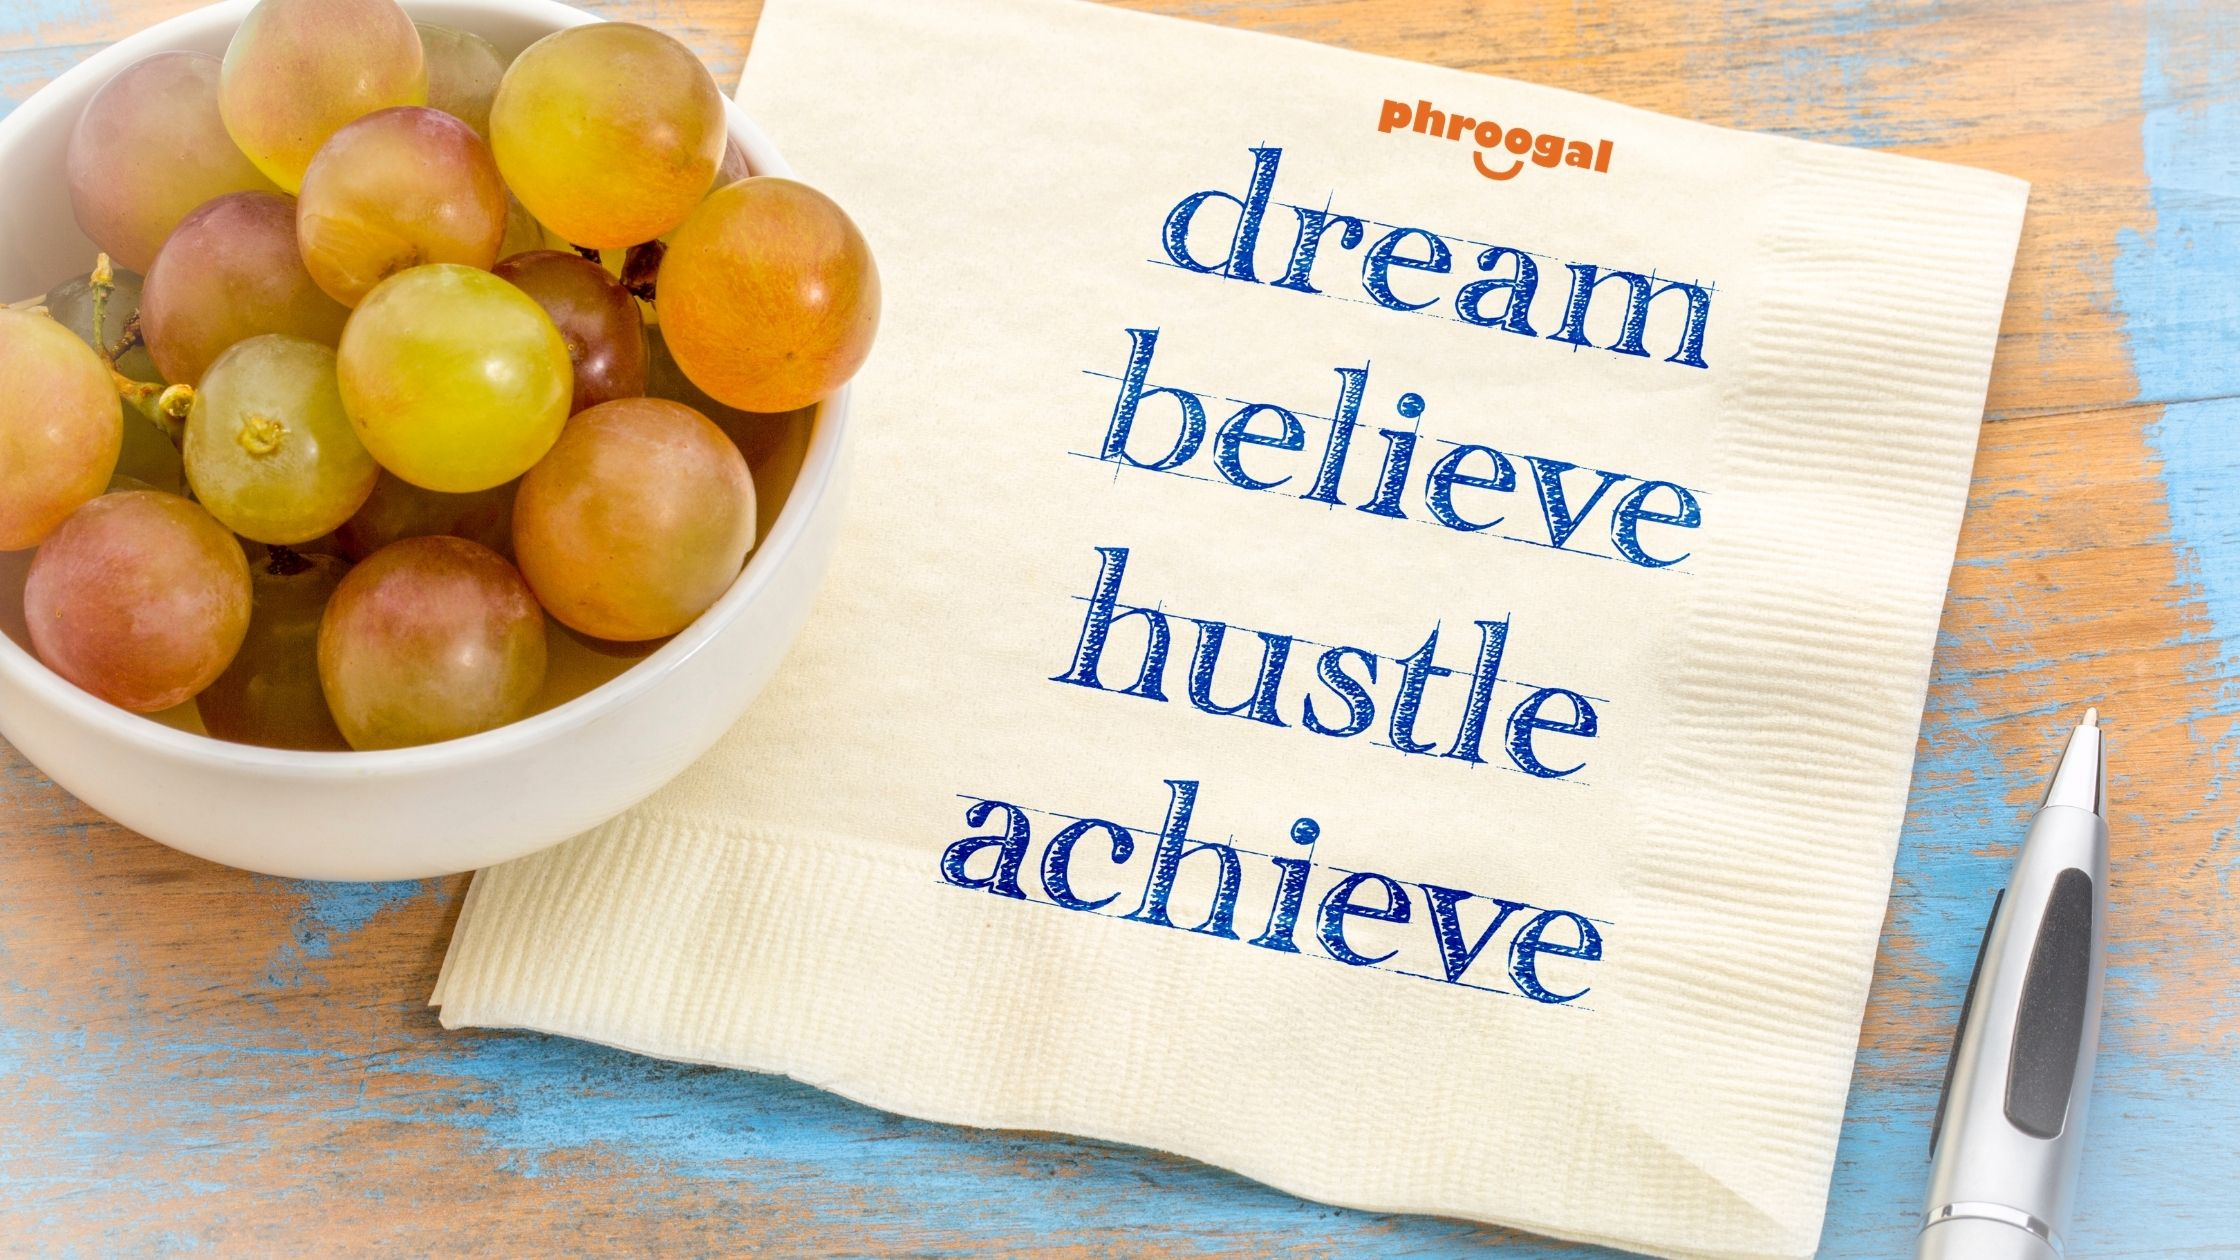 Start a Side Hustle for More Fun Extra Cash and Financial Security phroogal